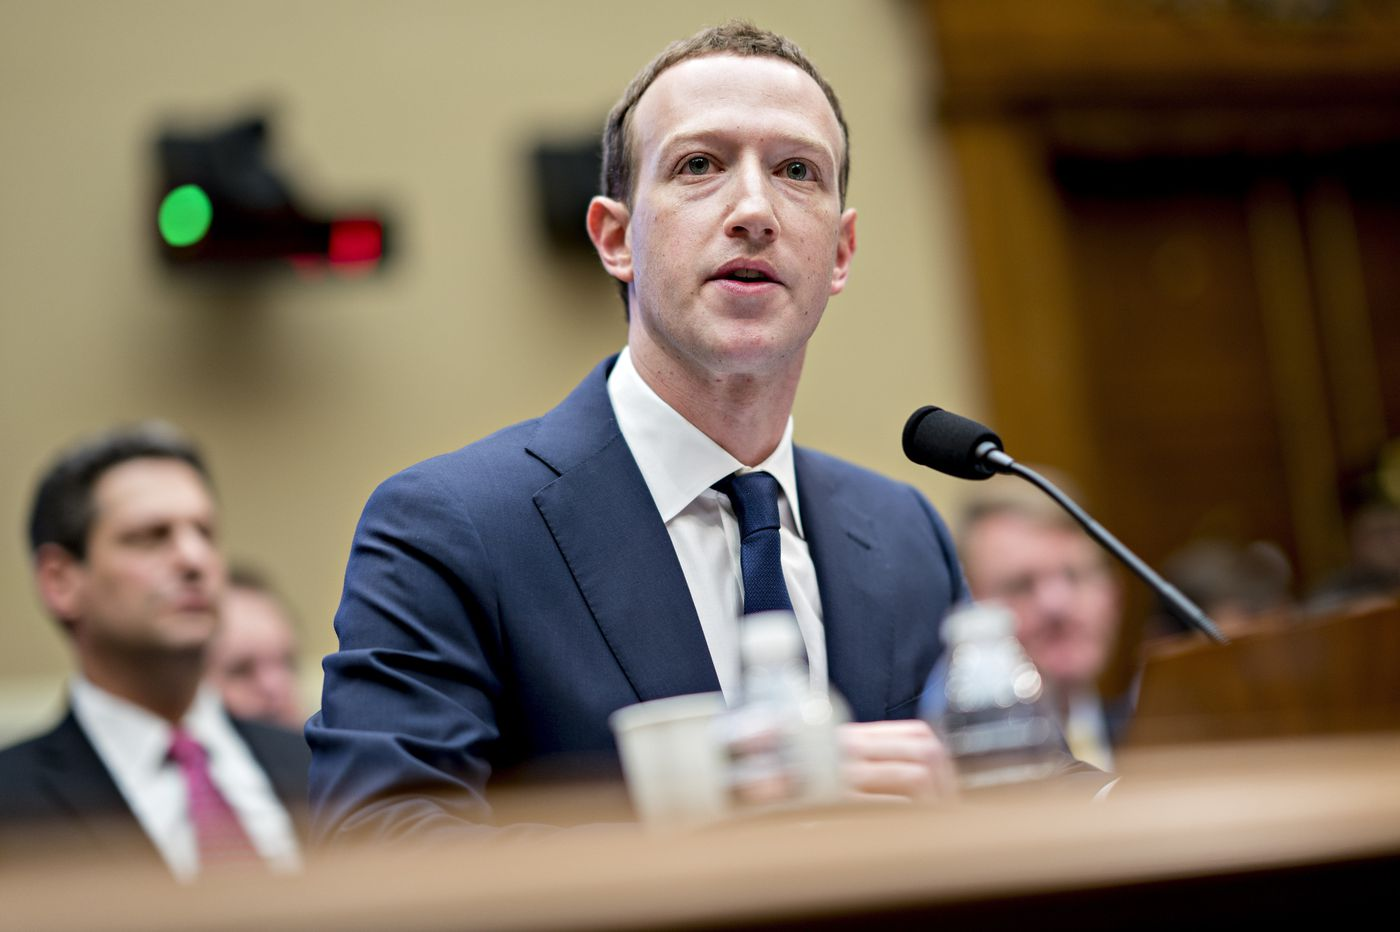 Zuckerberg says he and Sandberg will stay put, even after Facebook's scandals